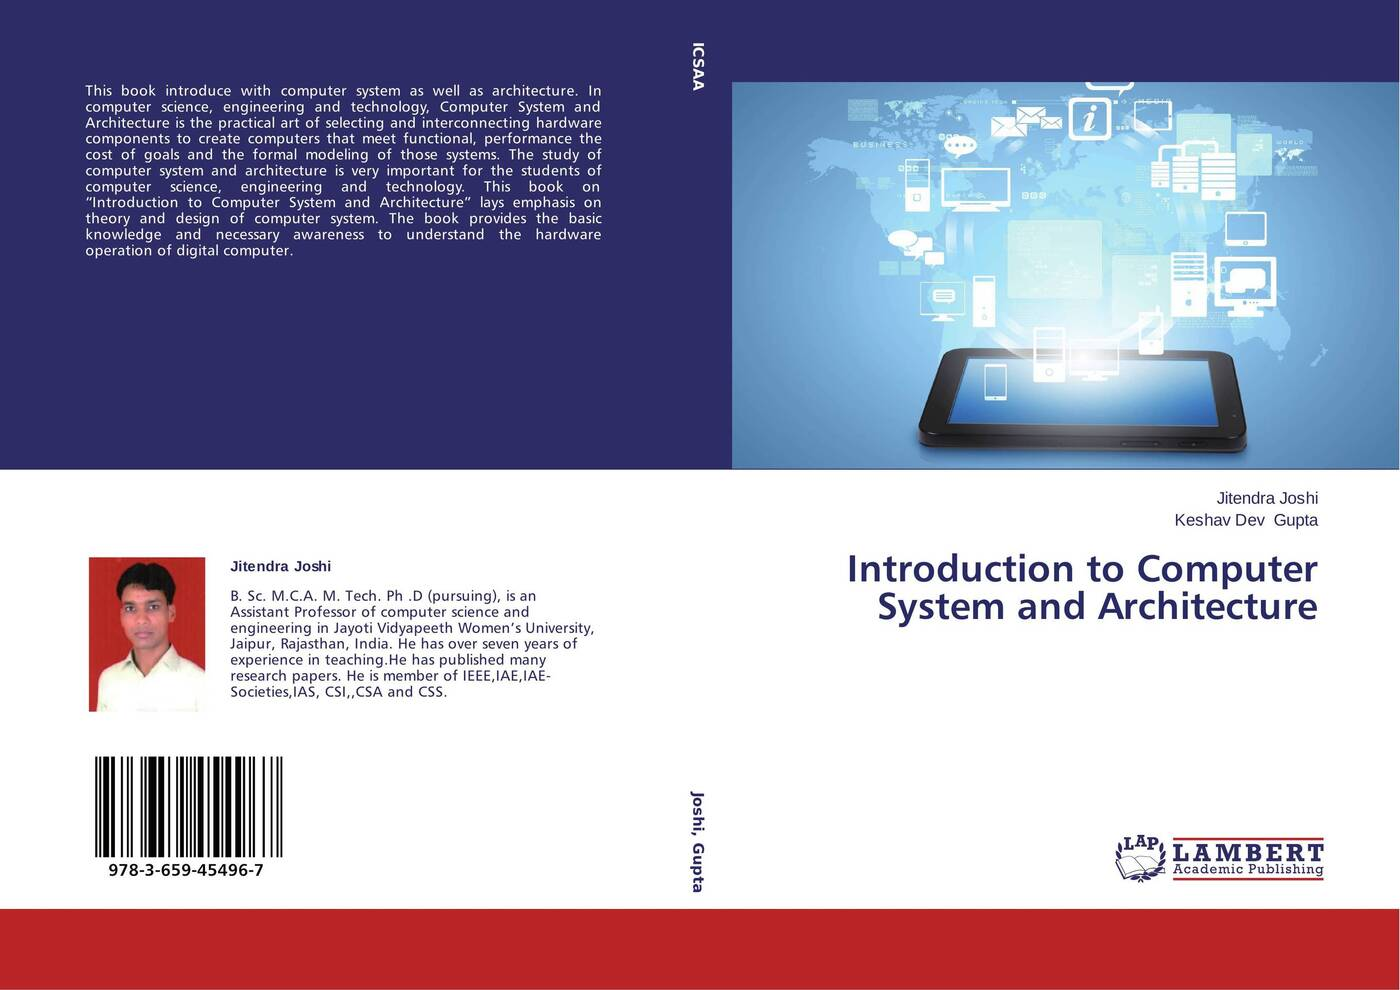 Jitendra Joshi and Keshav Dev Gupta Introduction to Computer System and Architecture james kalmbach the computer and the page the theory history and pedagogy of publishing technology and the classroom